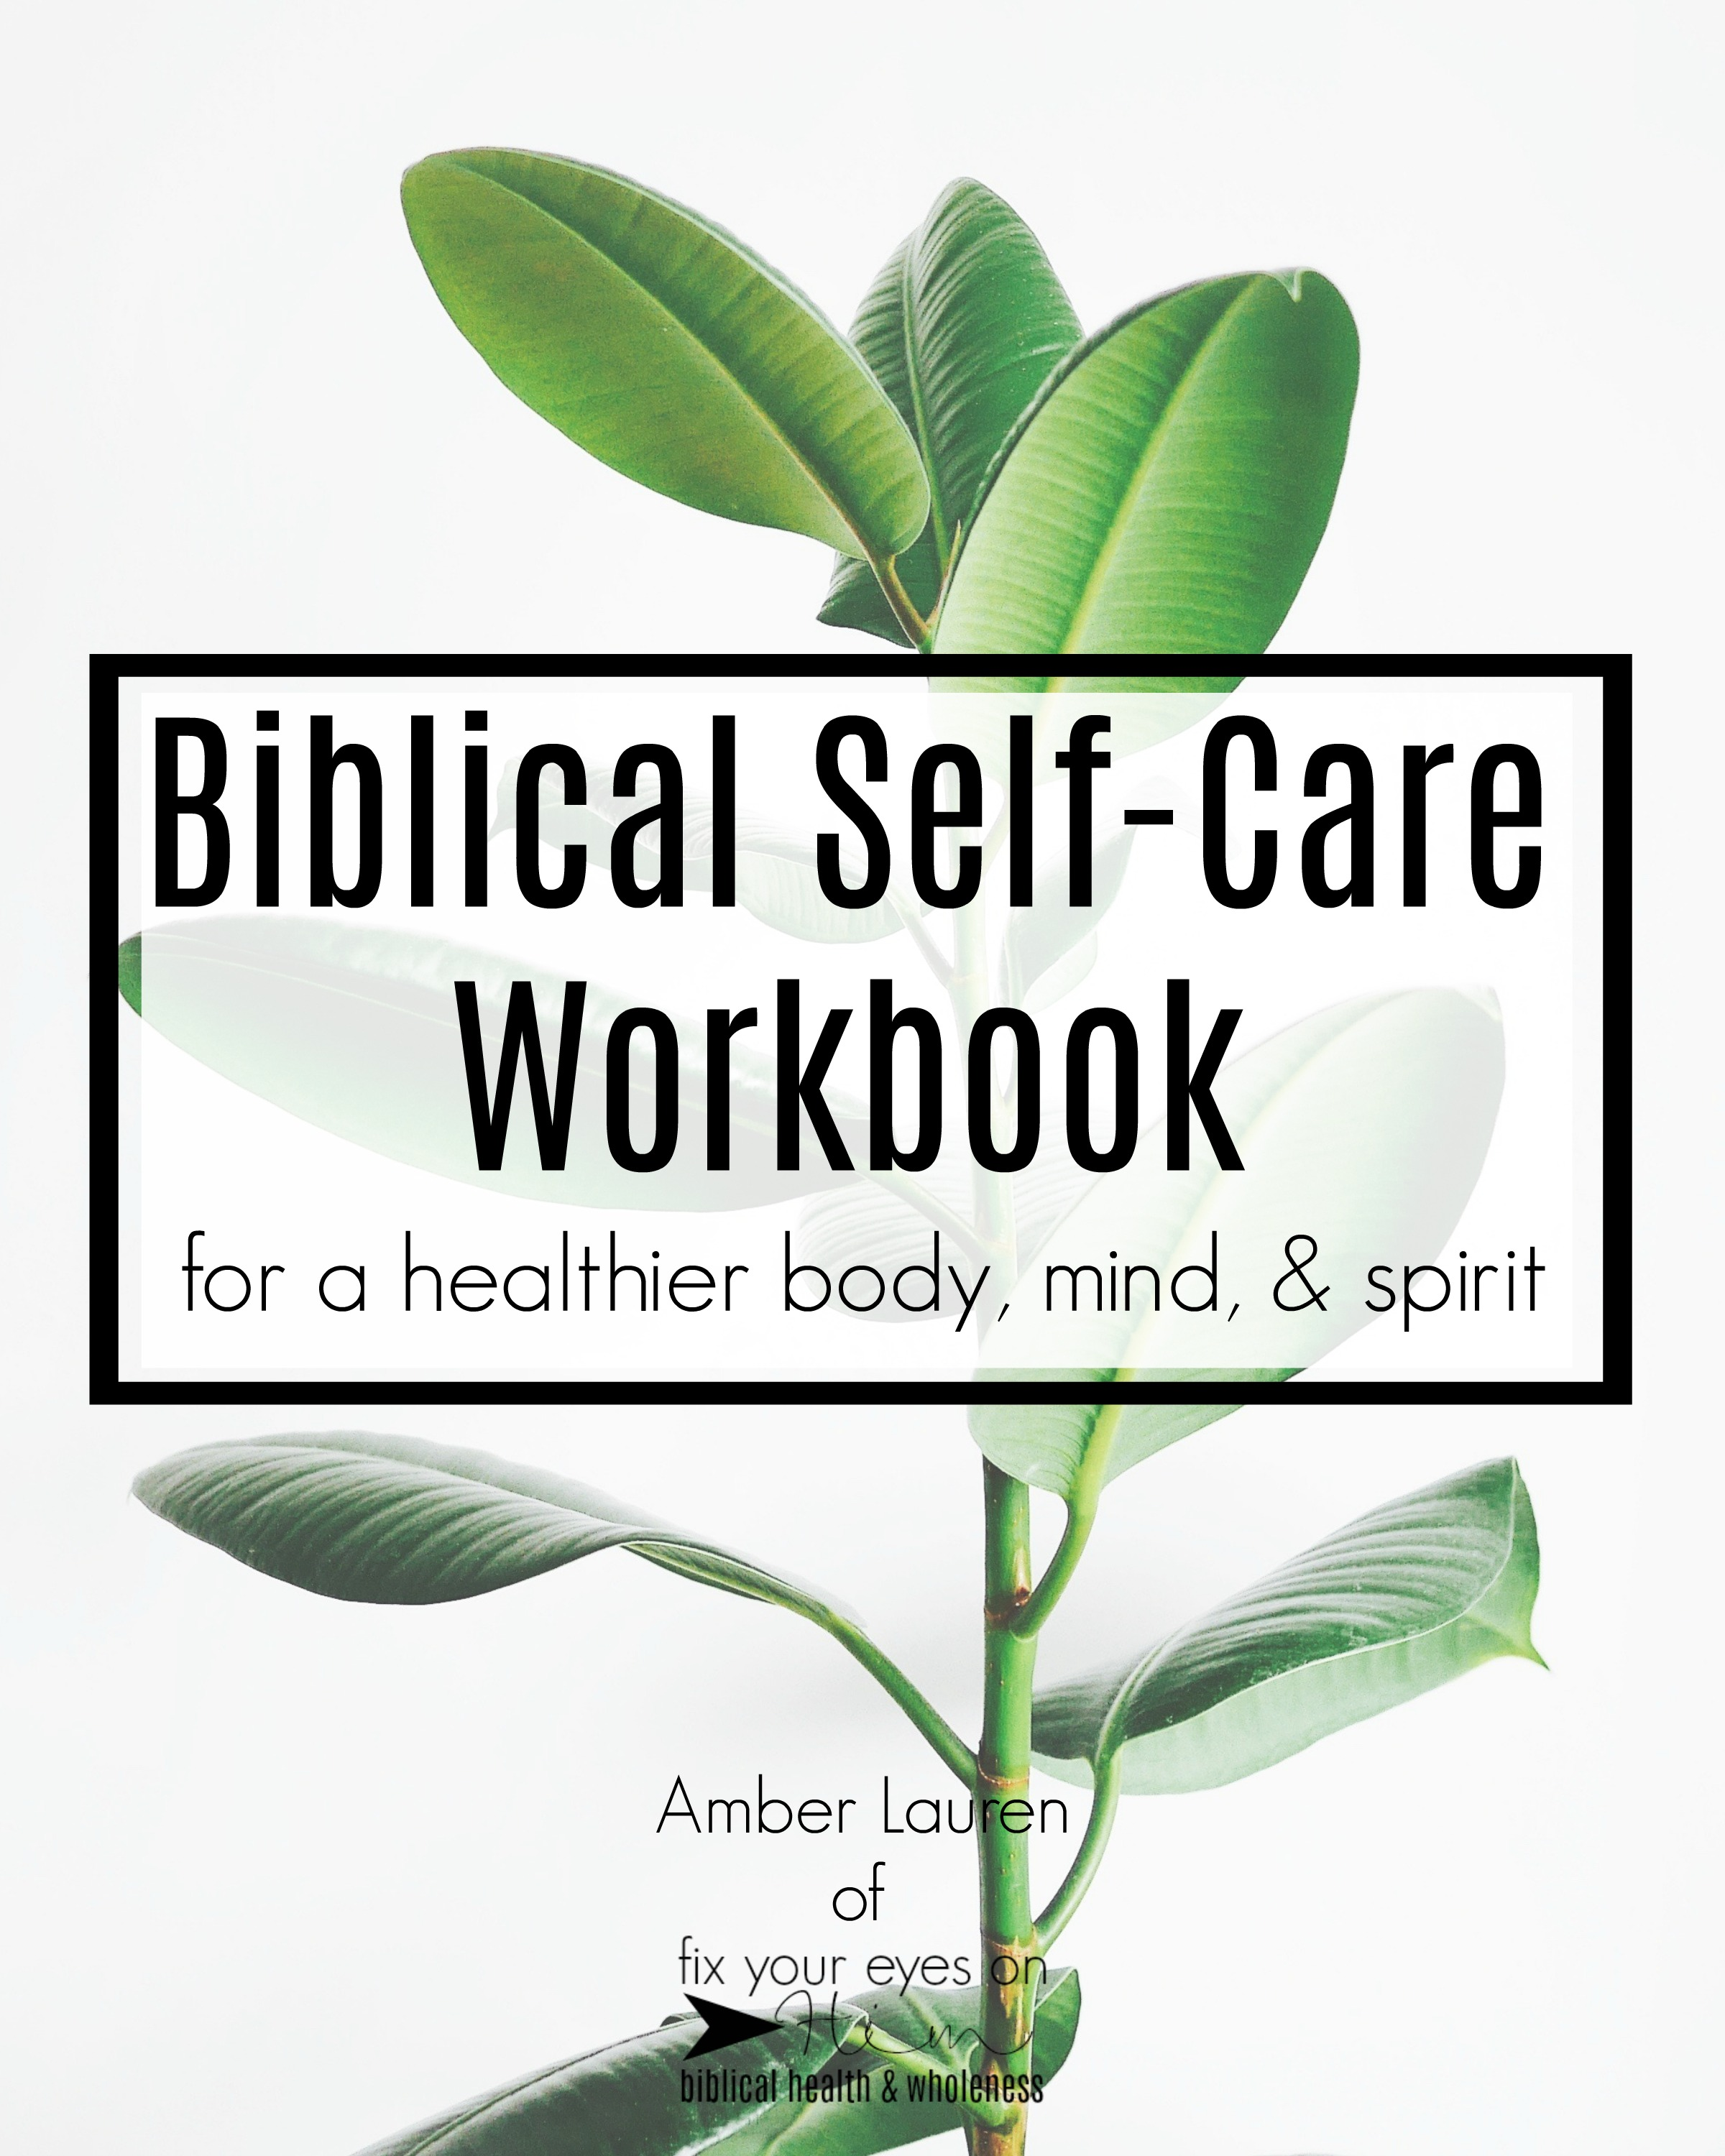 INSTANT DOWNLOAD: Biblical Self-Care Workbook